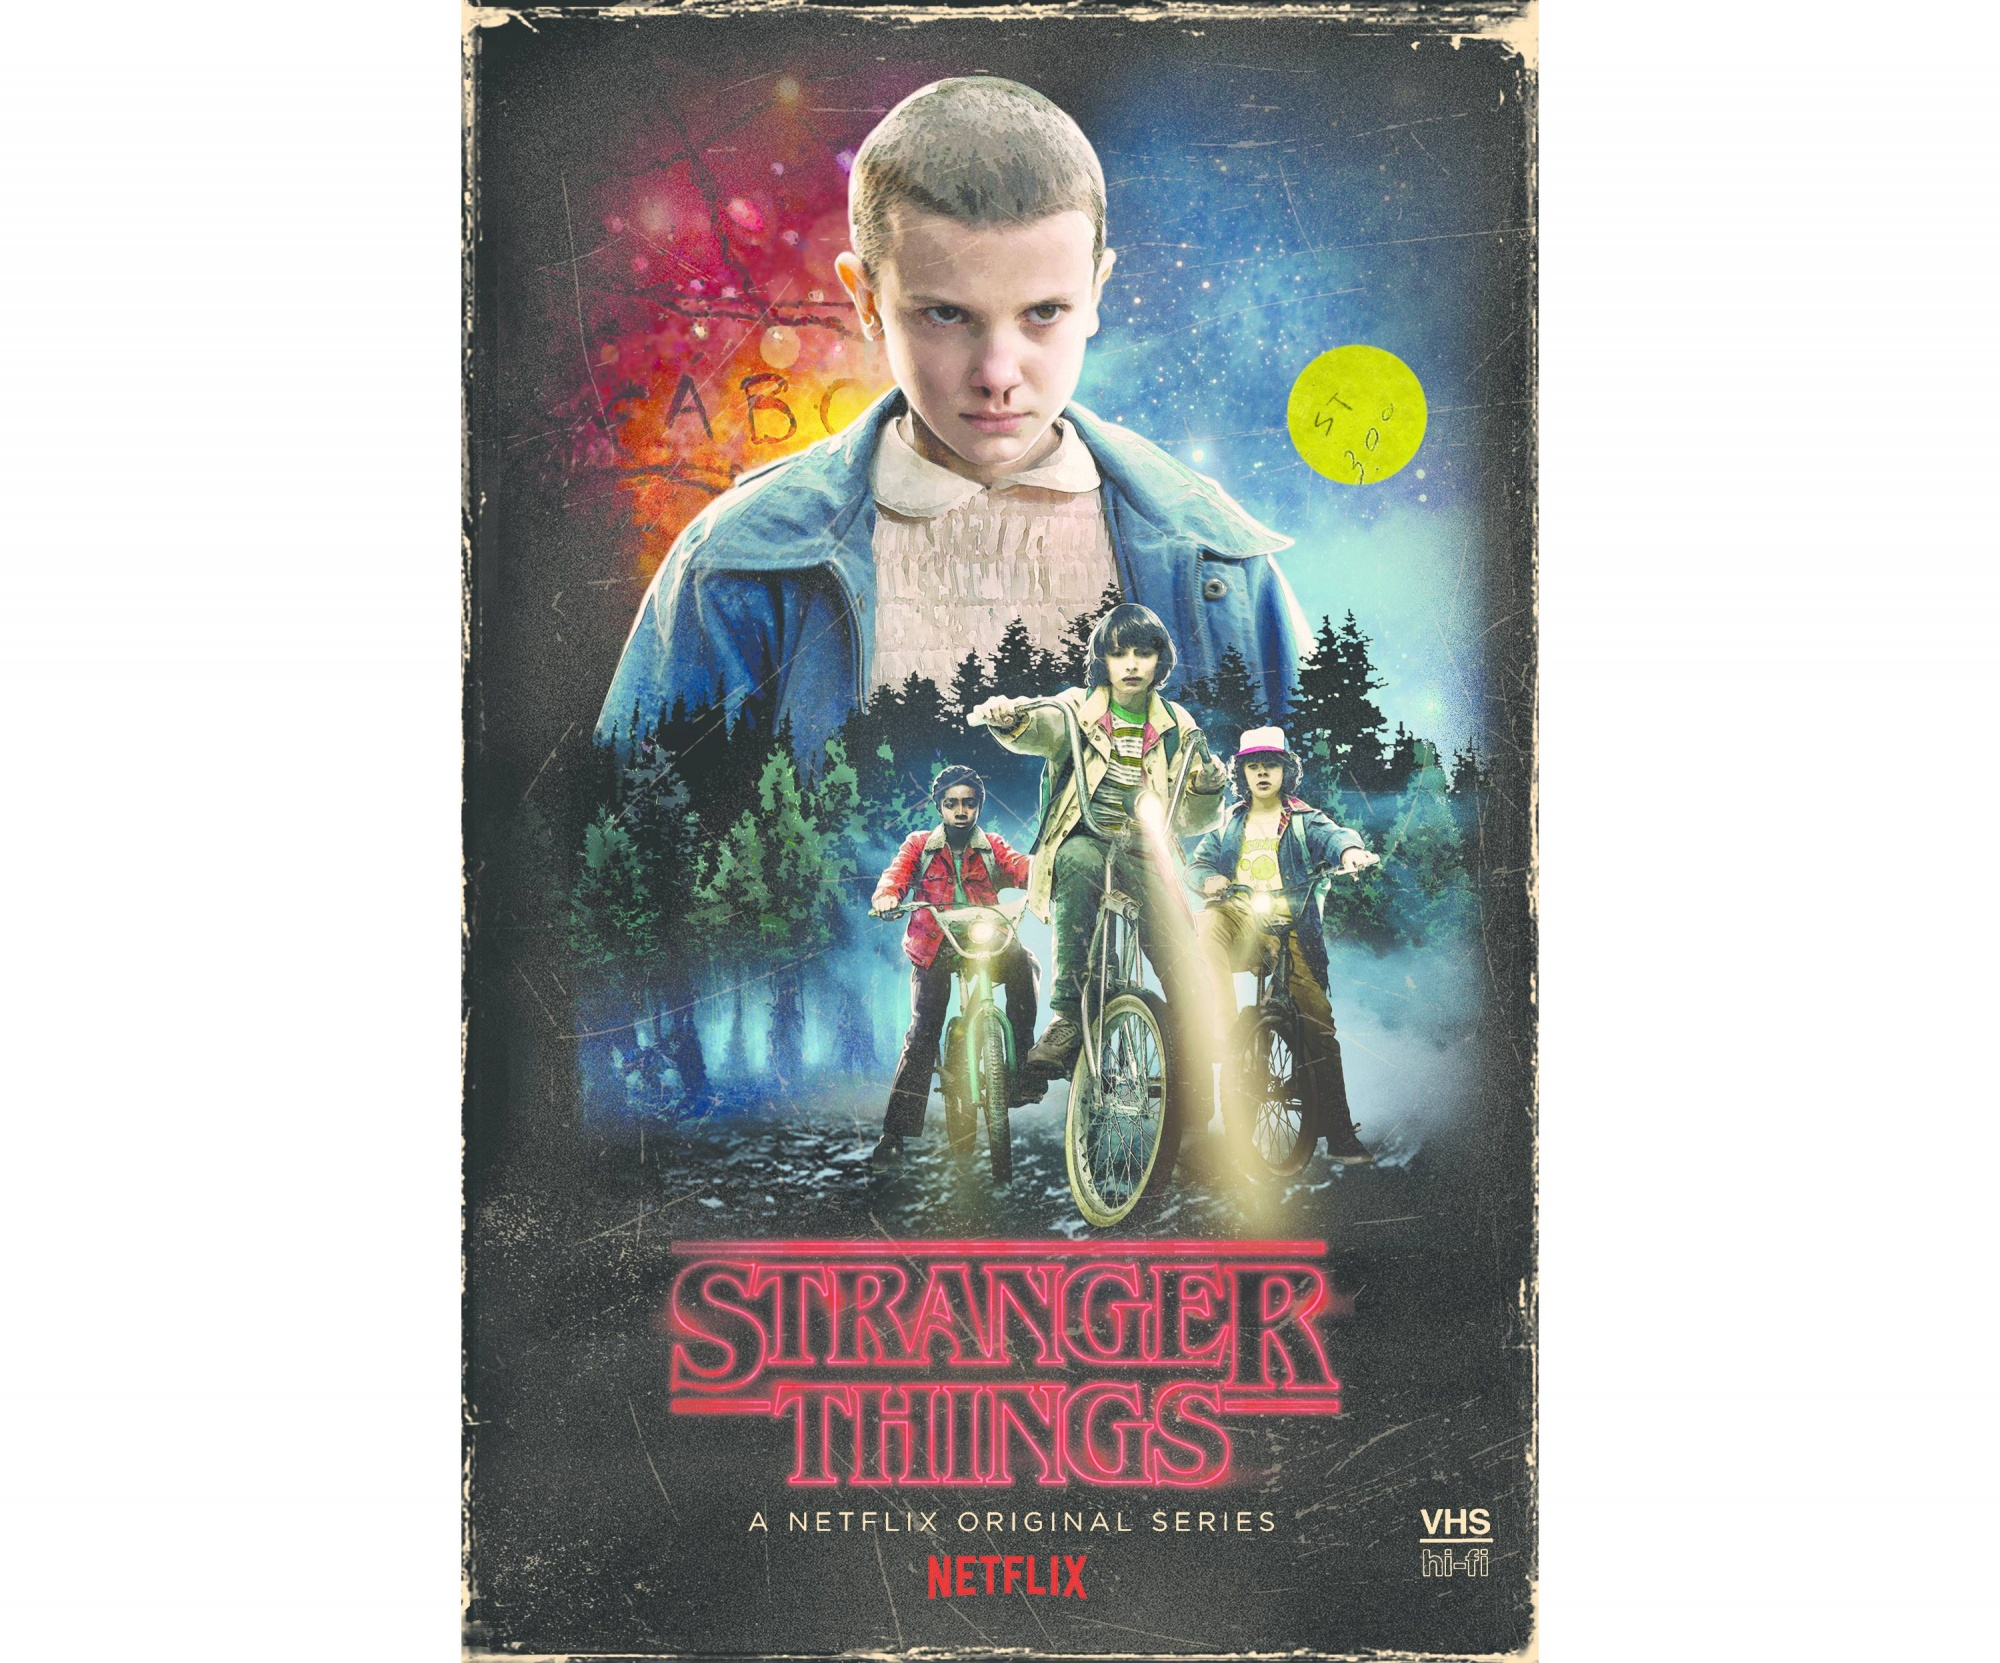 Stranger Things Season 1 4-disc DVD / Blu-Ray Collector's Edition Box Set (Exclusive VHS Box Style Packaging)